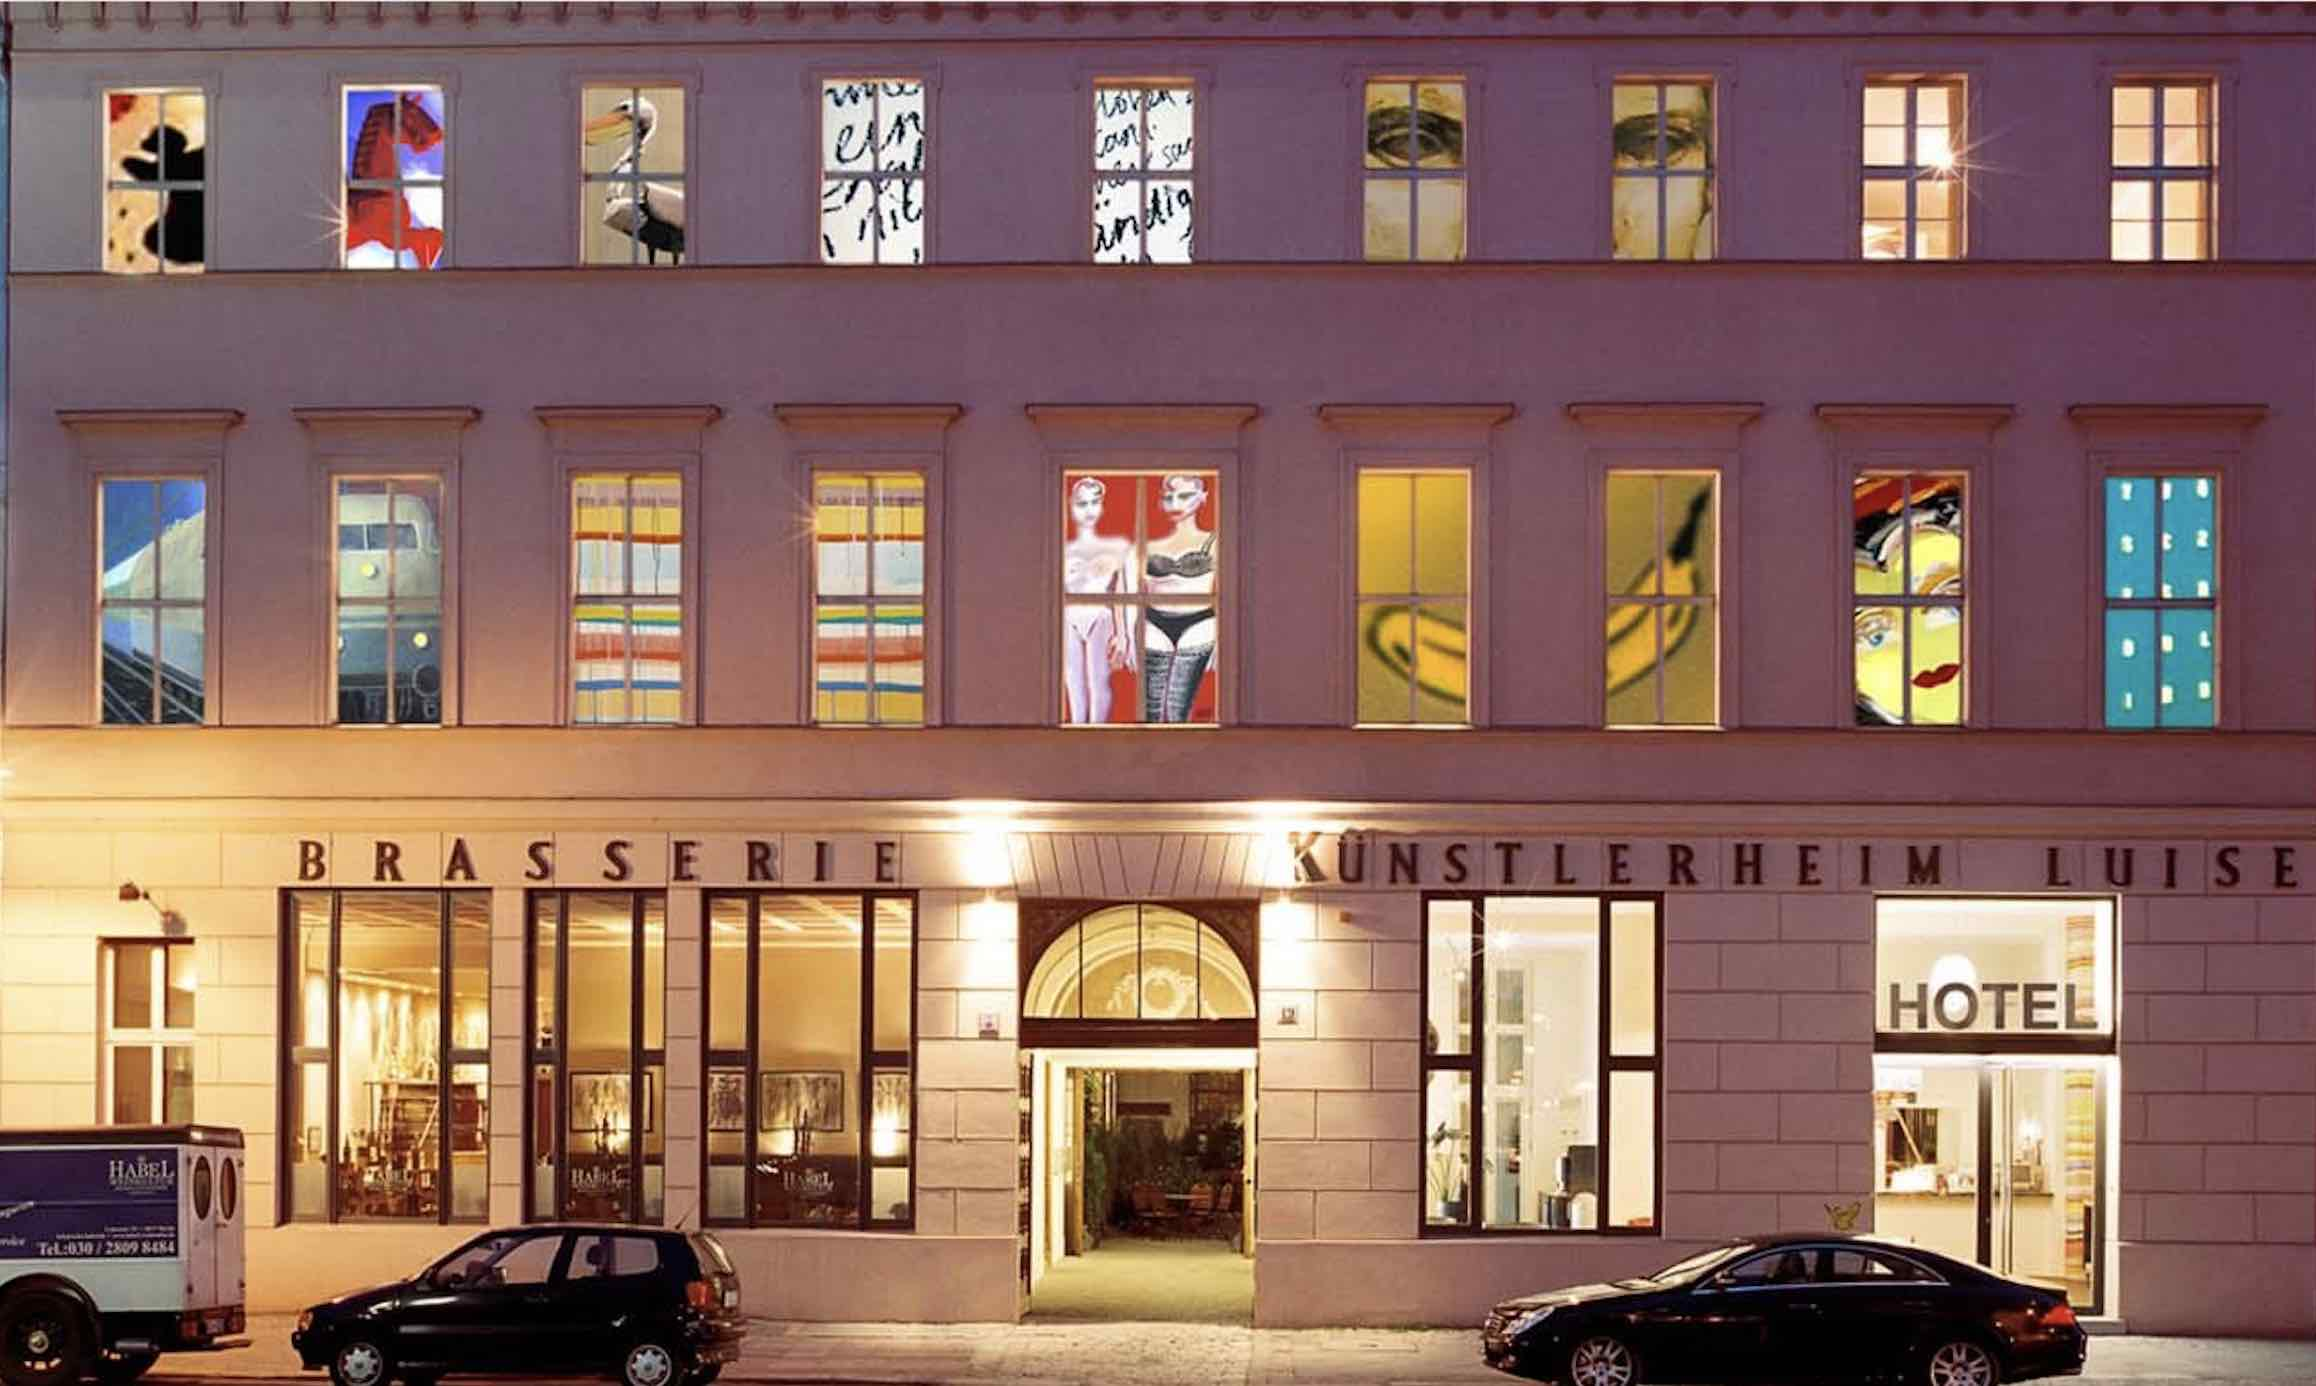 Arte Luise Arthotel unique hotels in berlin exterior at night with painted windows